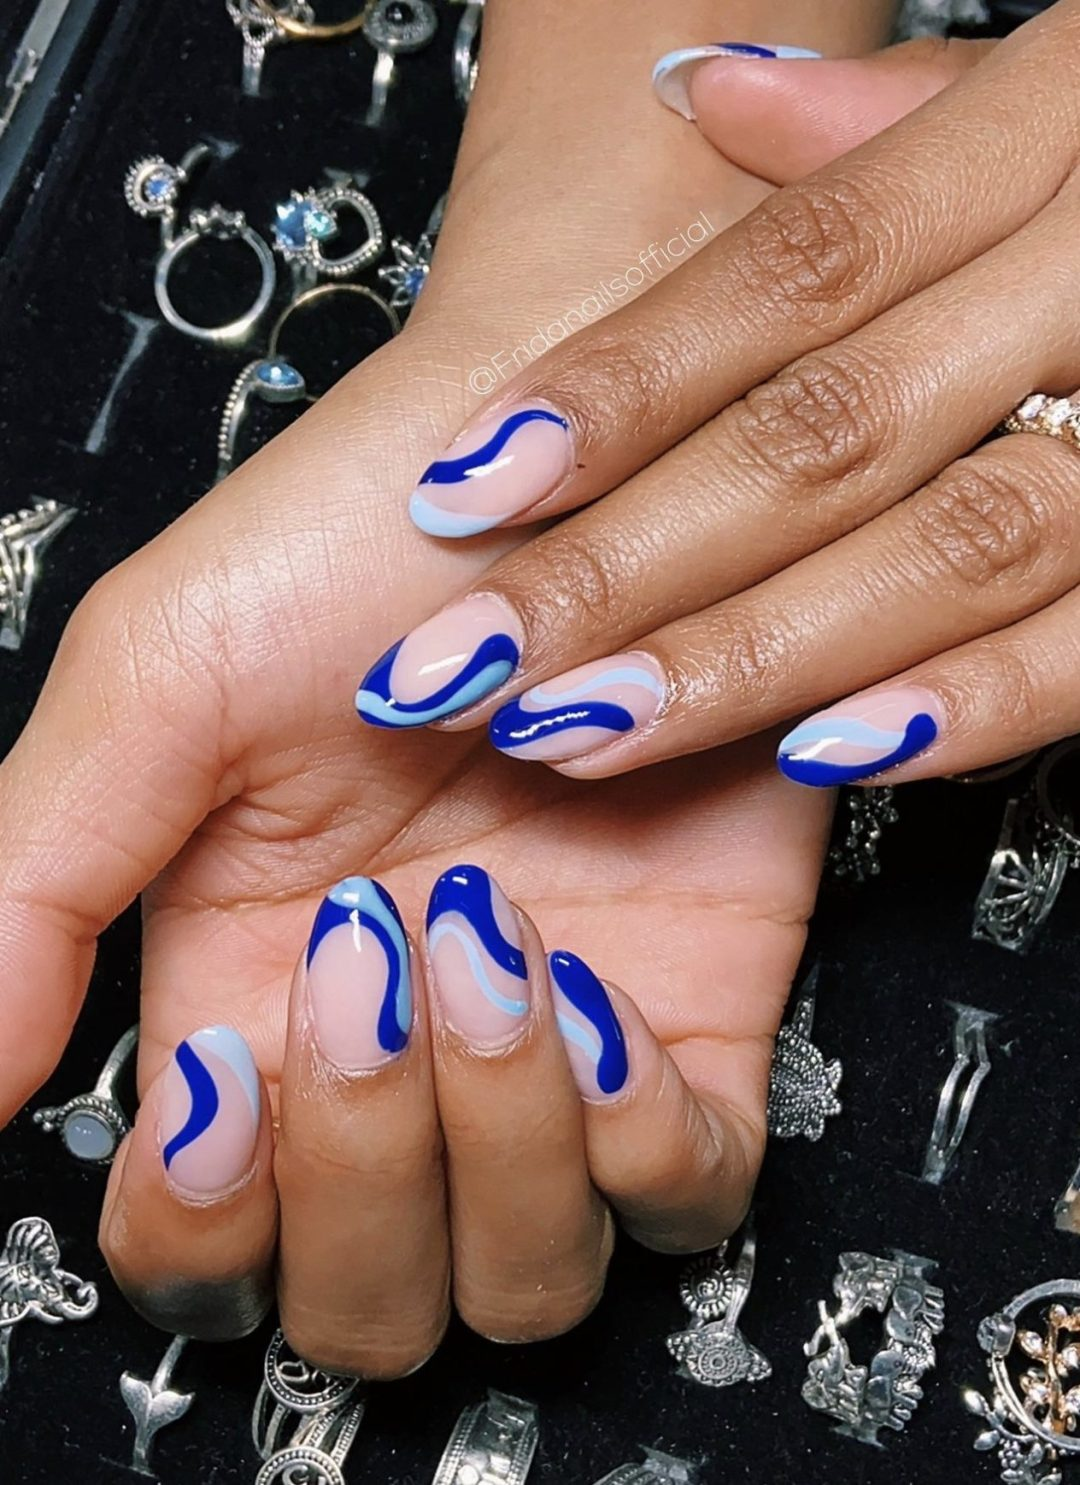 Blue abstract nails with lines and swirls